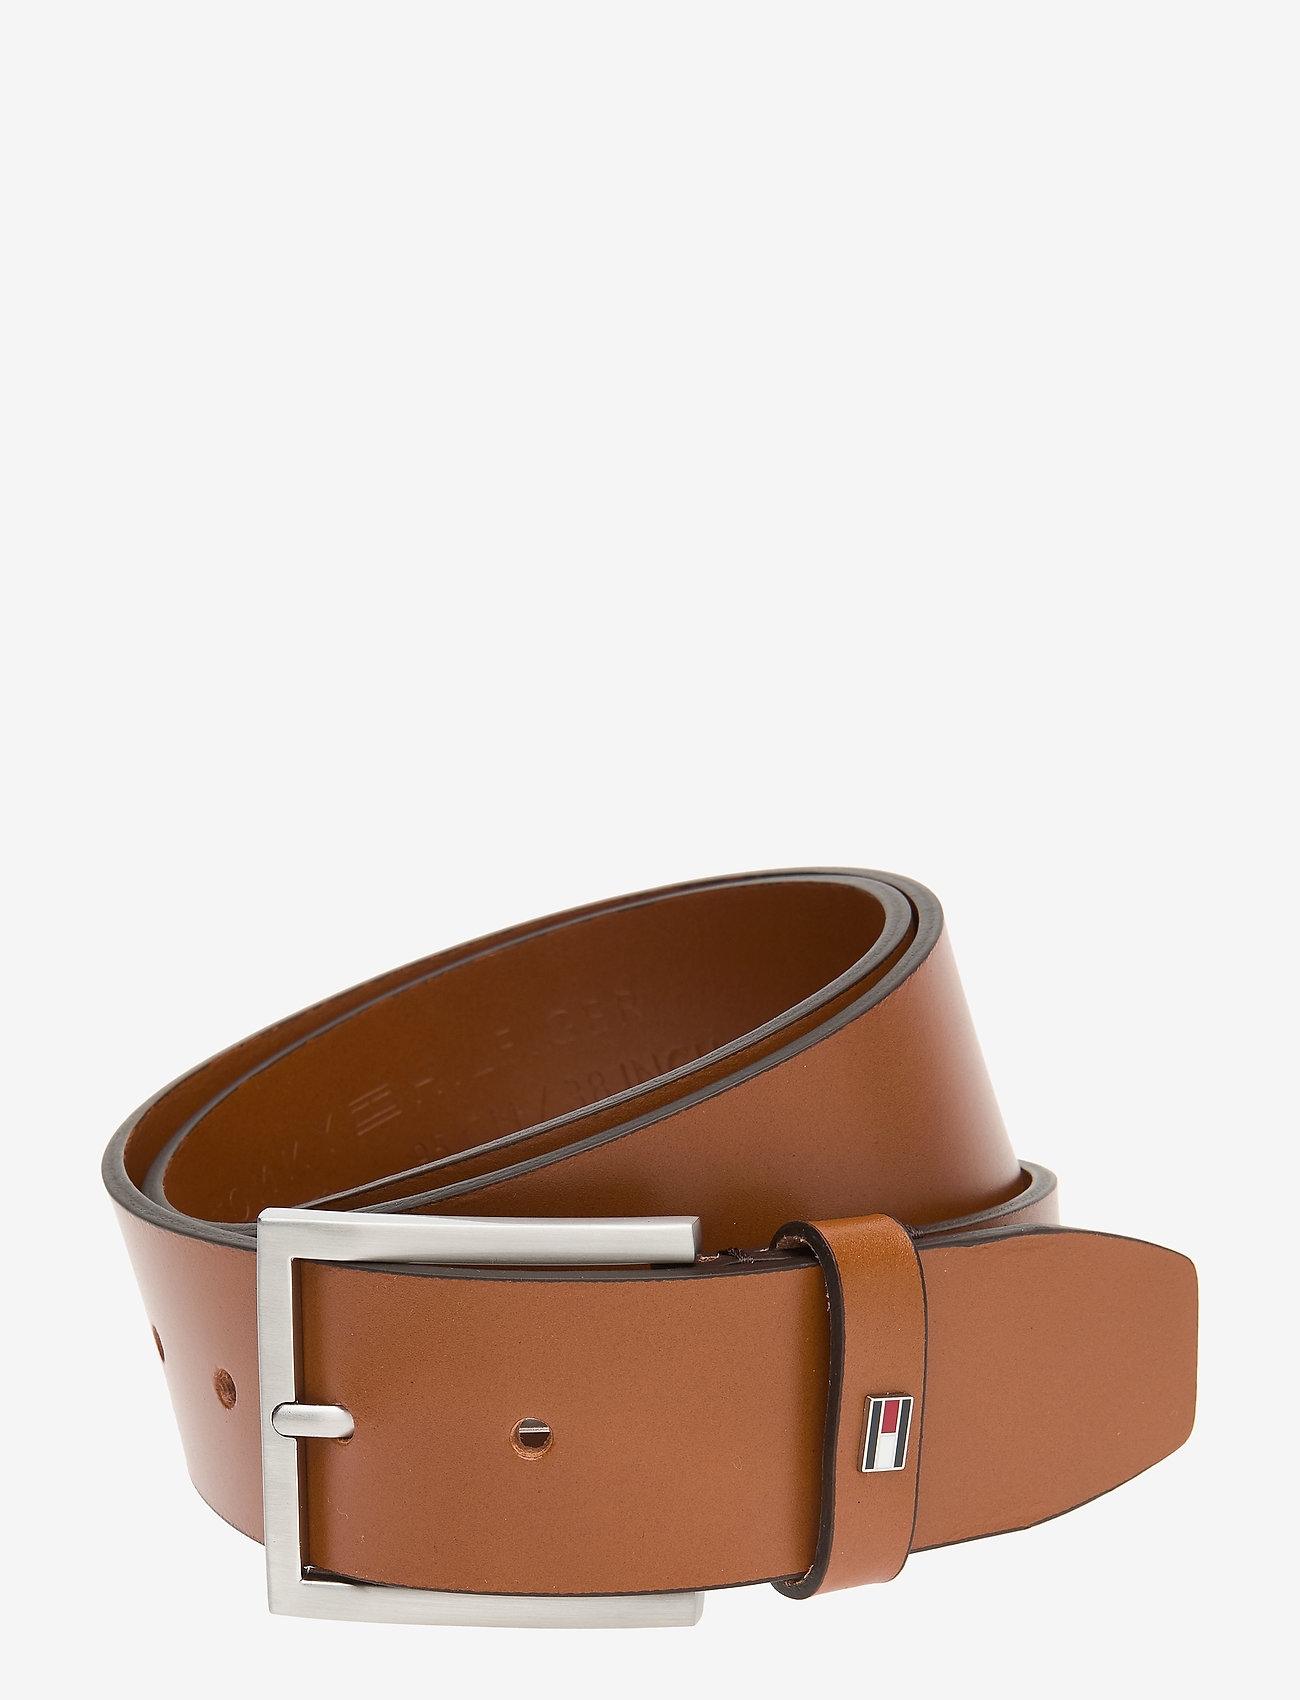 Tommy Hilfiger - HAMPTON LEATHER 4.0 - belts - cognac 18-1421 - 0